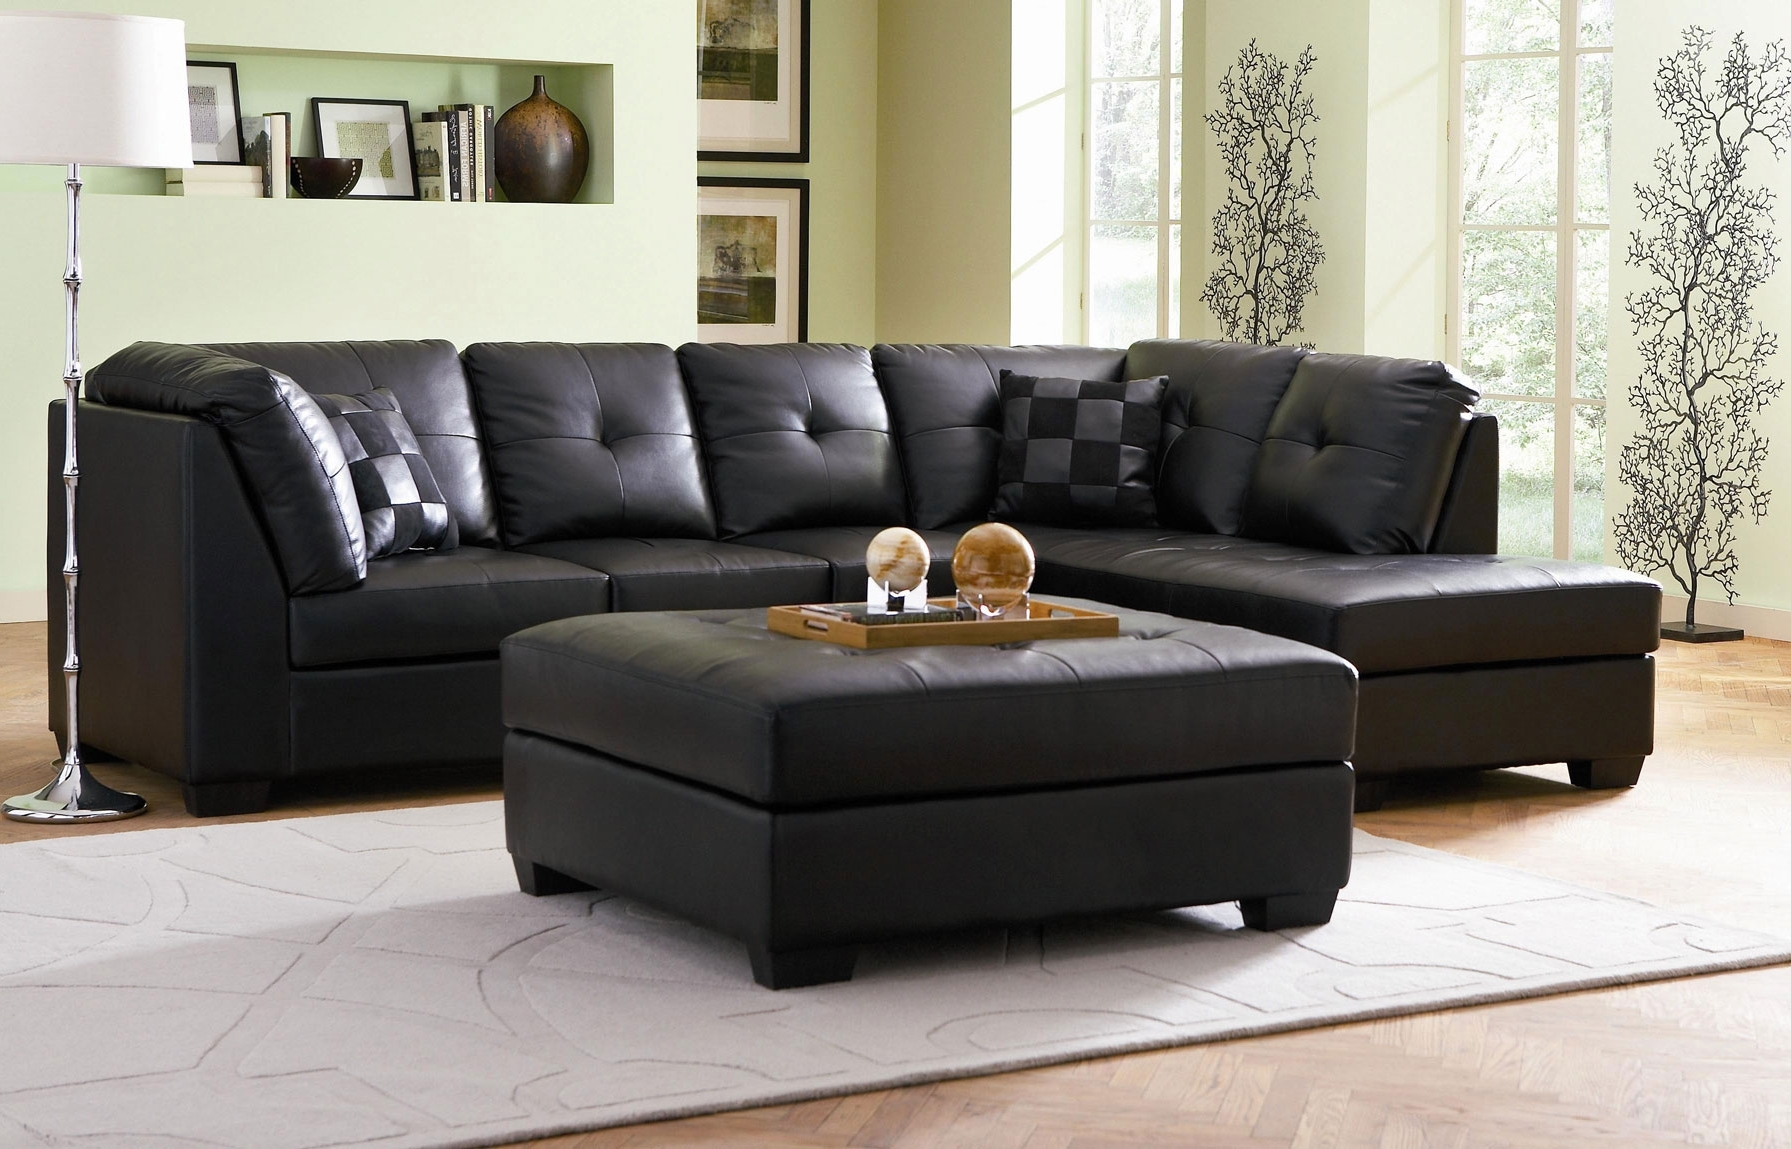 2018 Wilmington Nc Sectional Sofas Inside Sectional Sofa: The Best Sectional Sofas Charlotte Nc Sofa Mart (View 11 of 15)